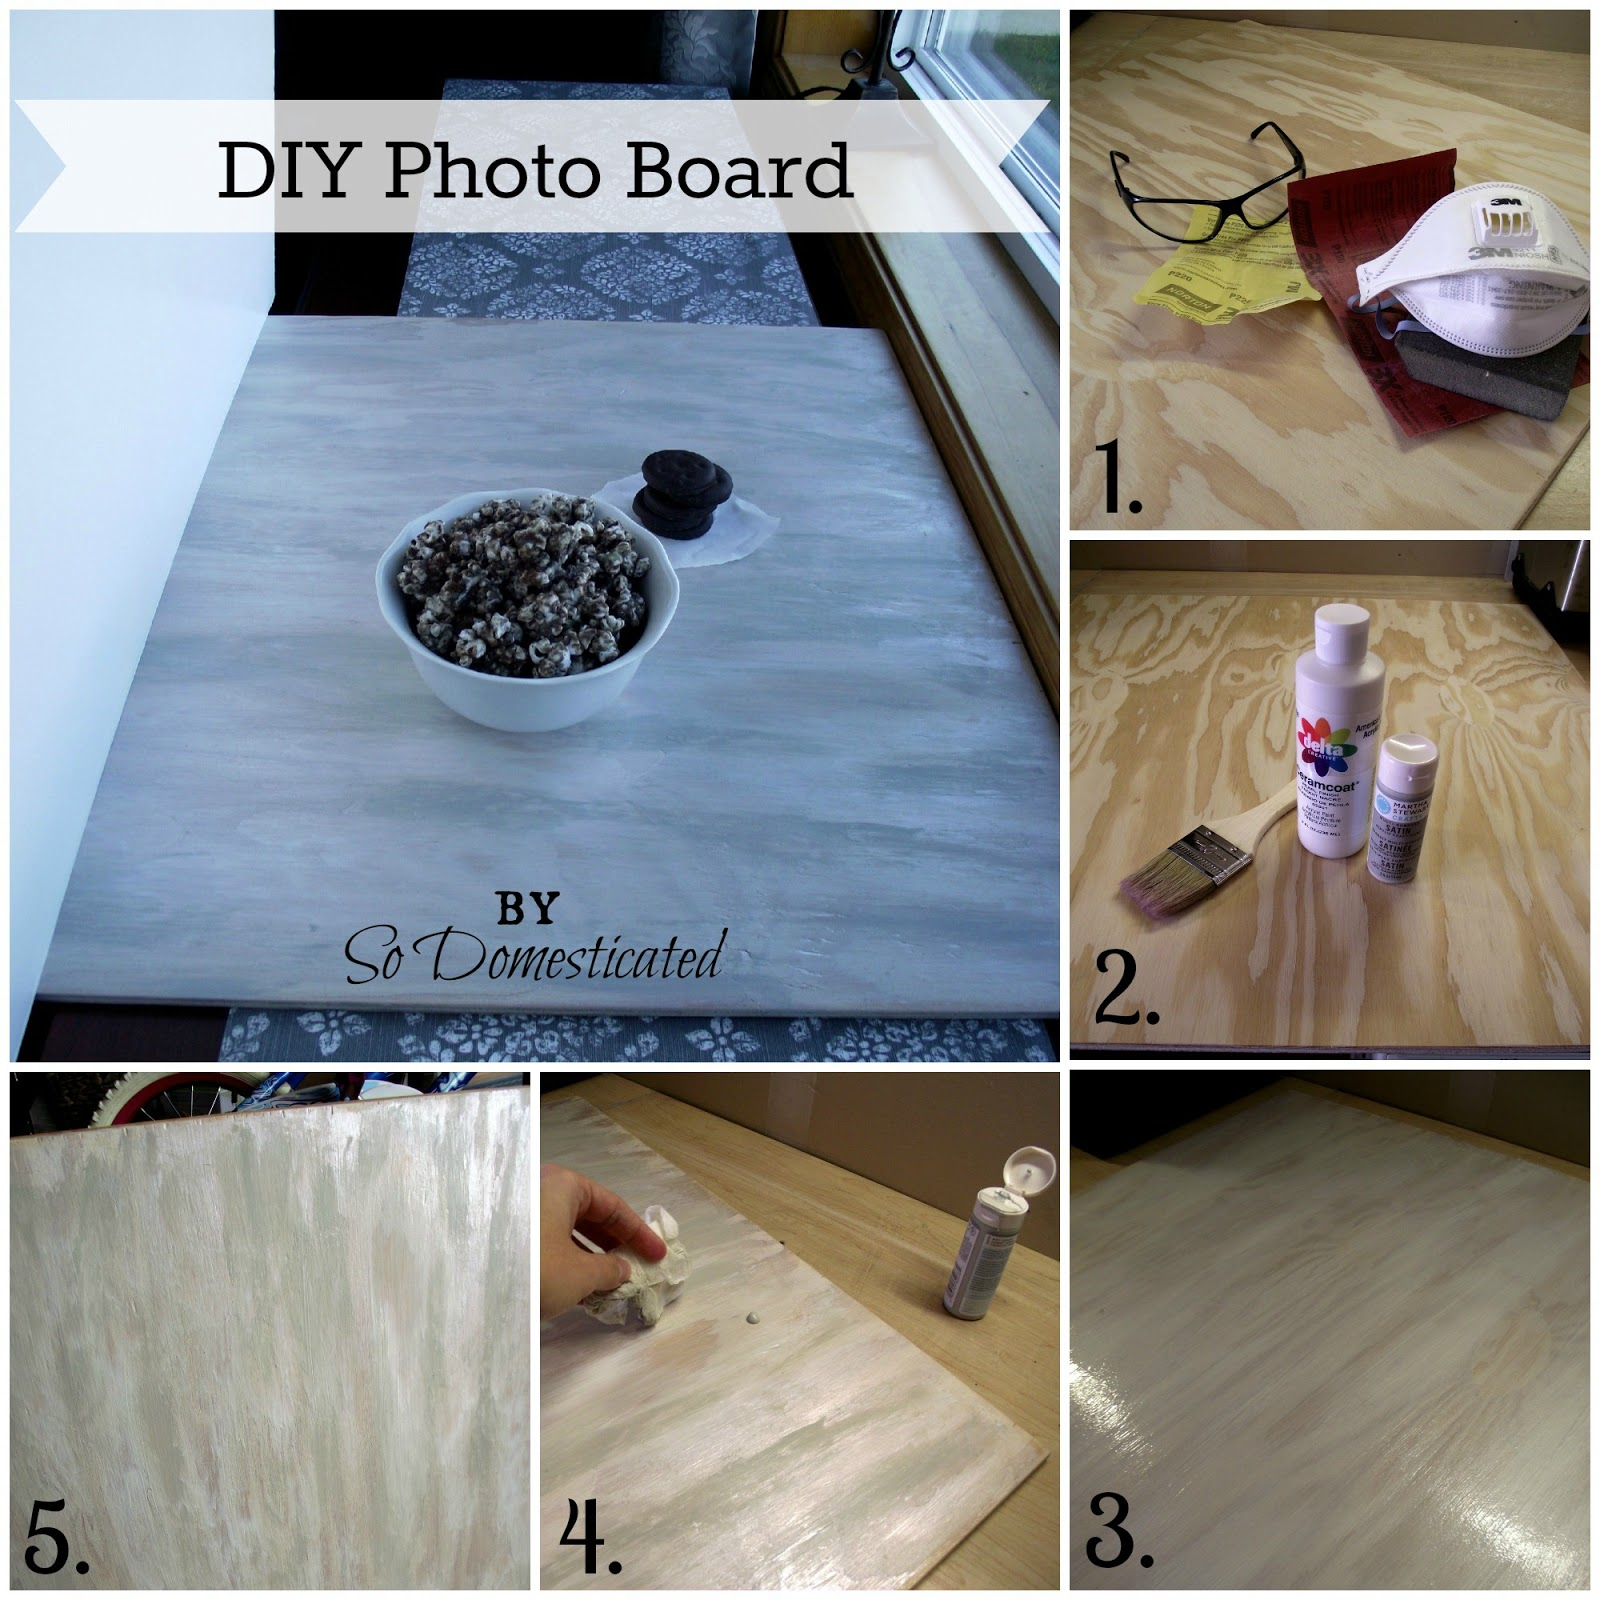 So Domesticated DIY Photo Board For Food Photography